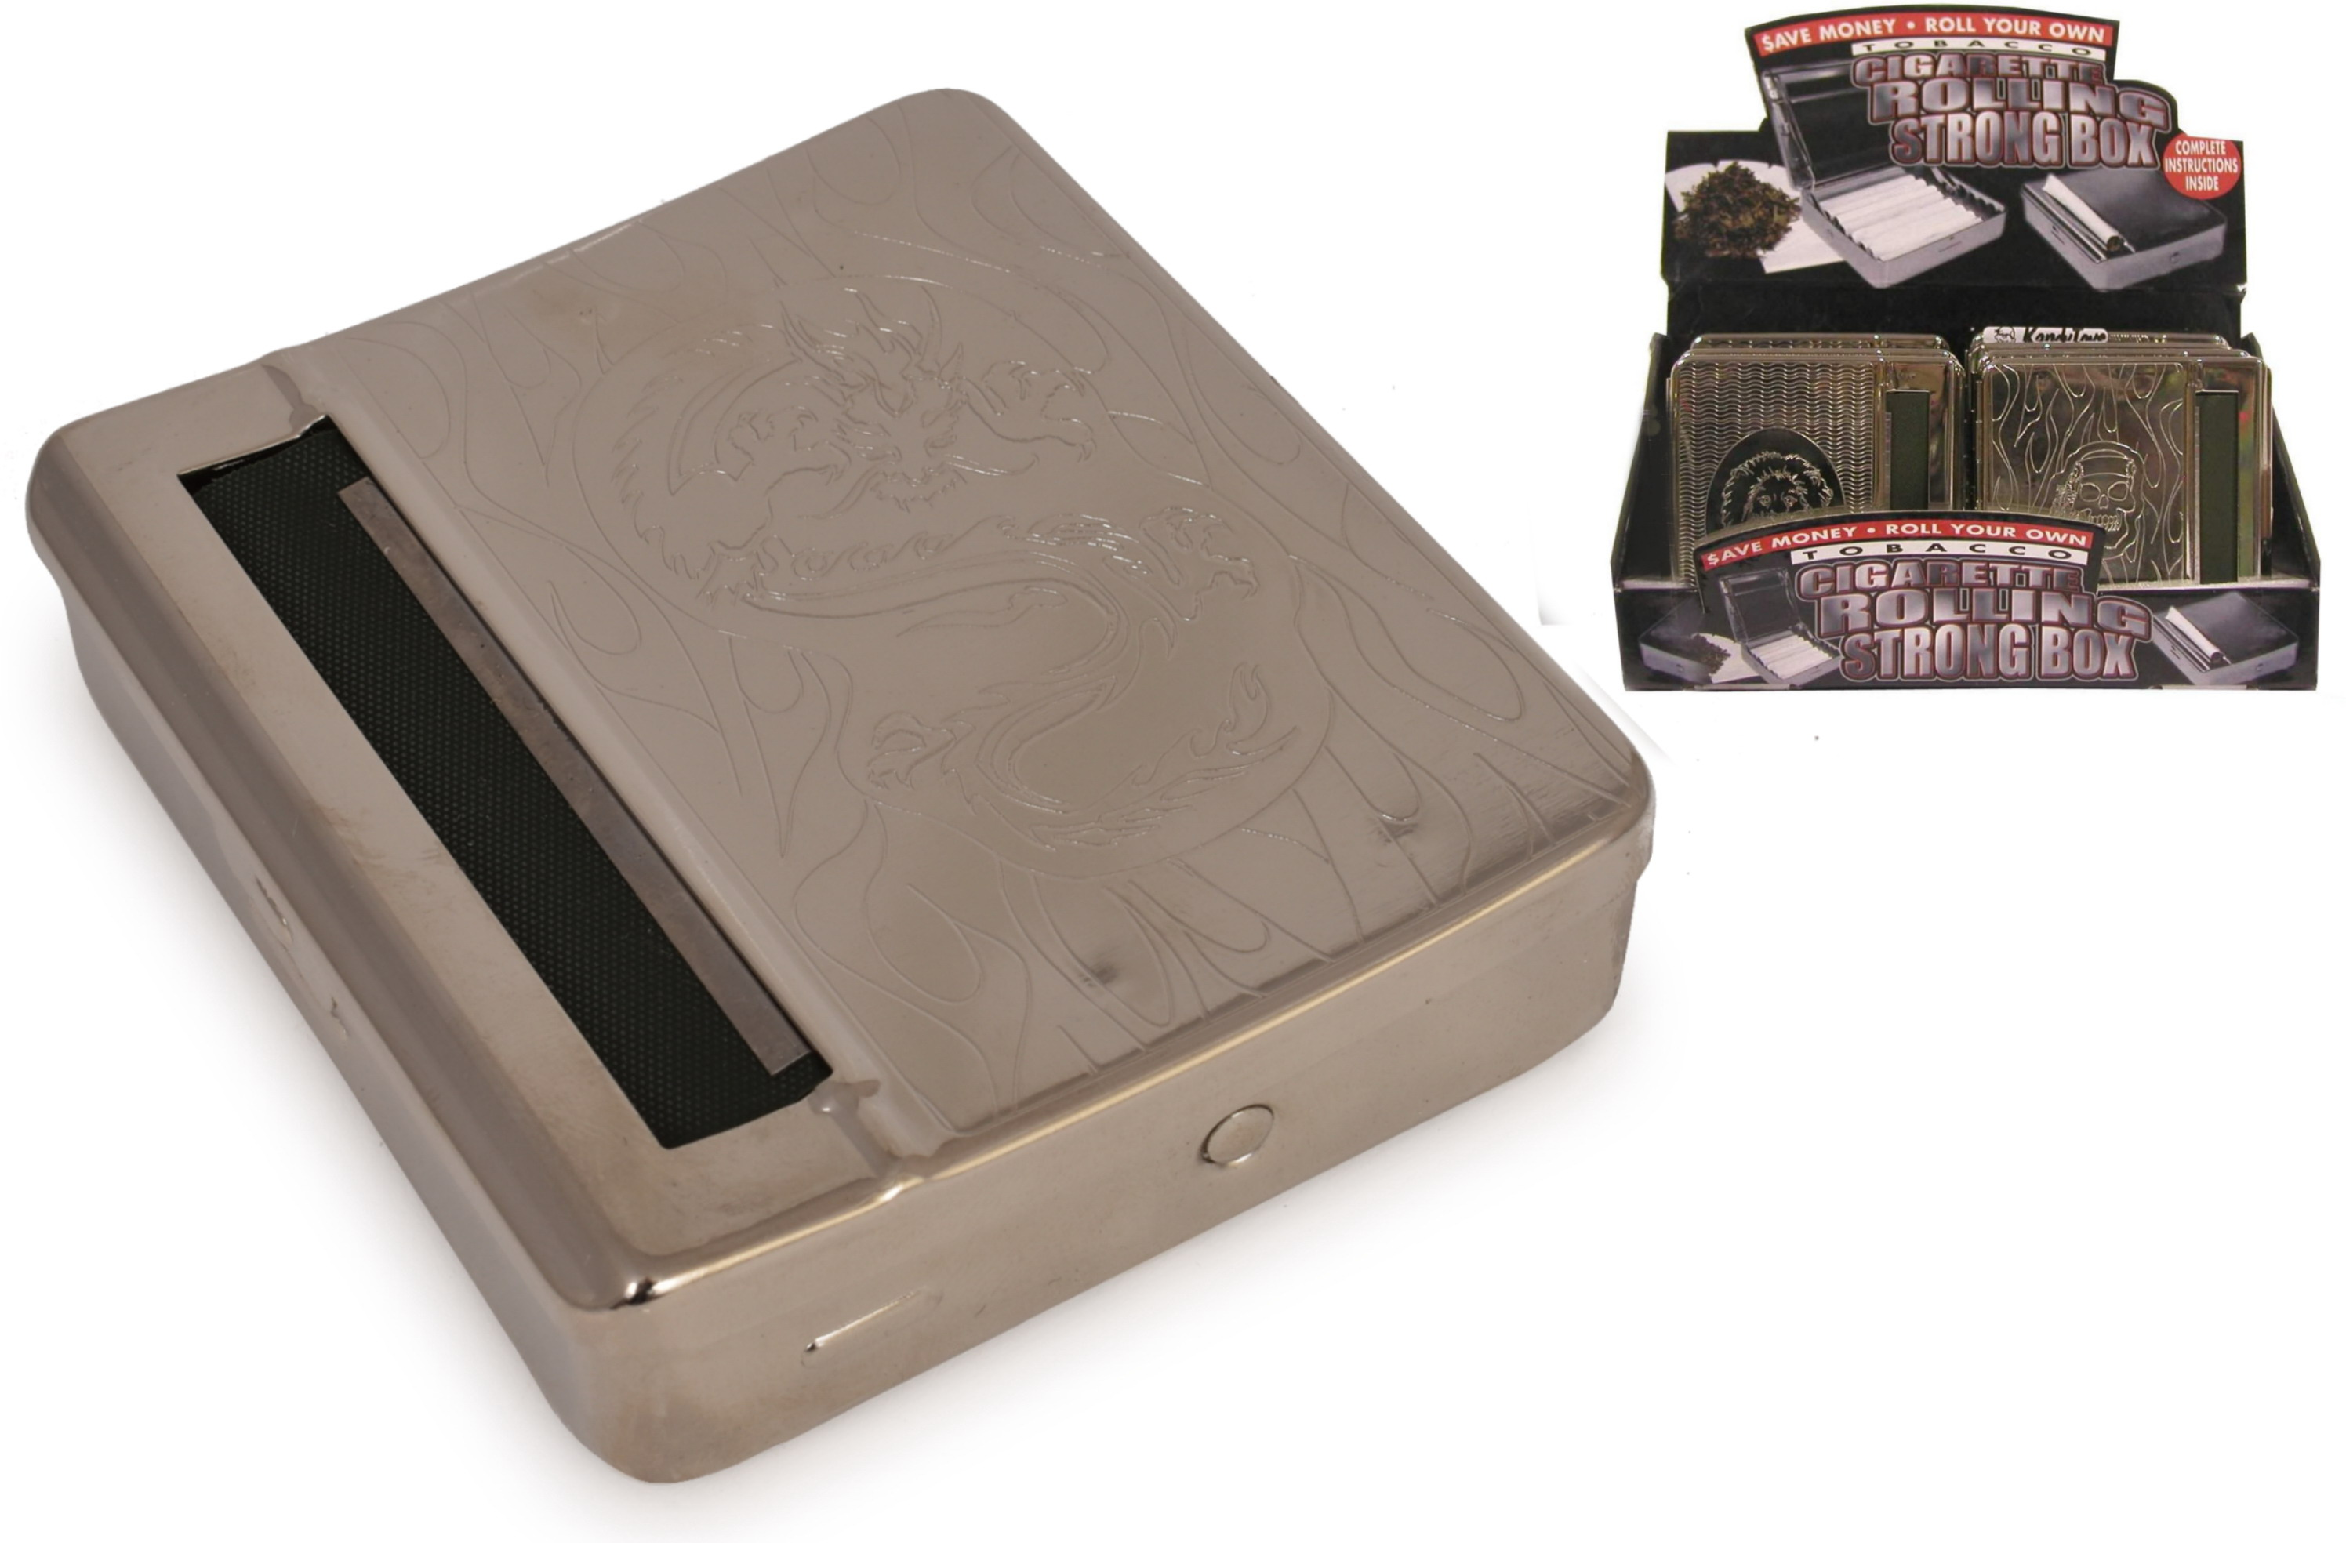 Cigarette Rolling Strong Box With Engraved Design